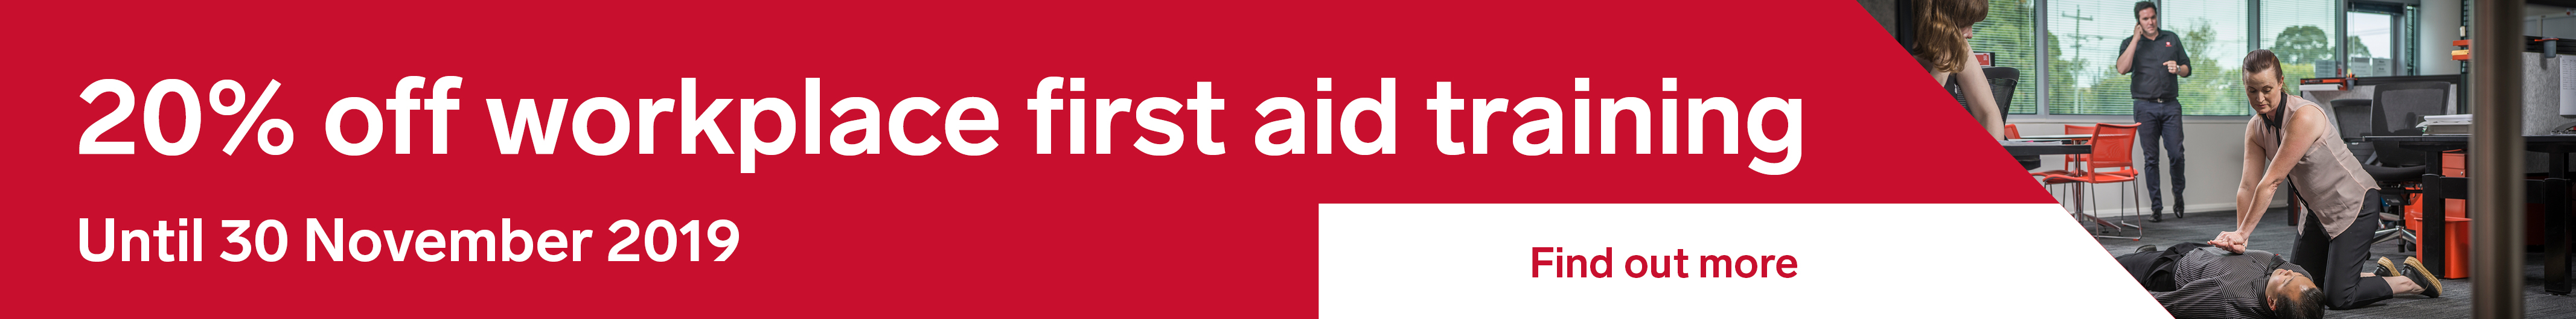 Workplace first aid deal_4267x529px_v1_72